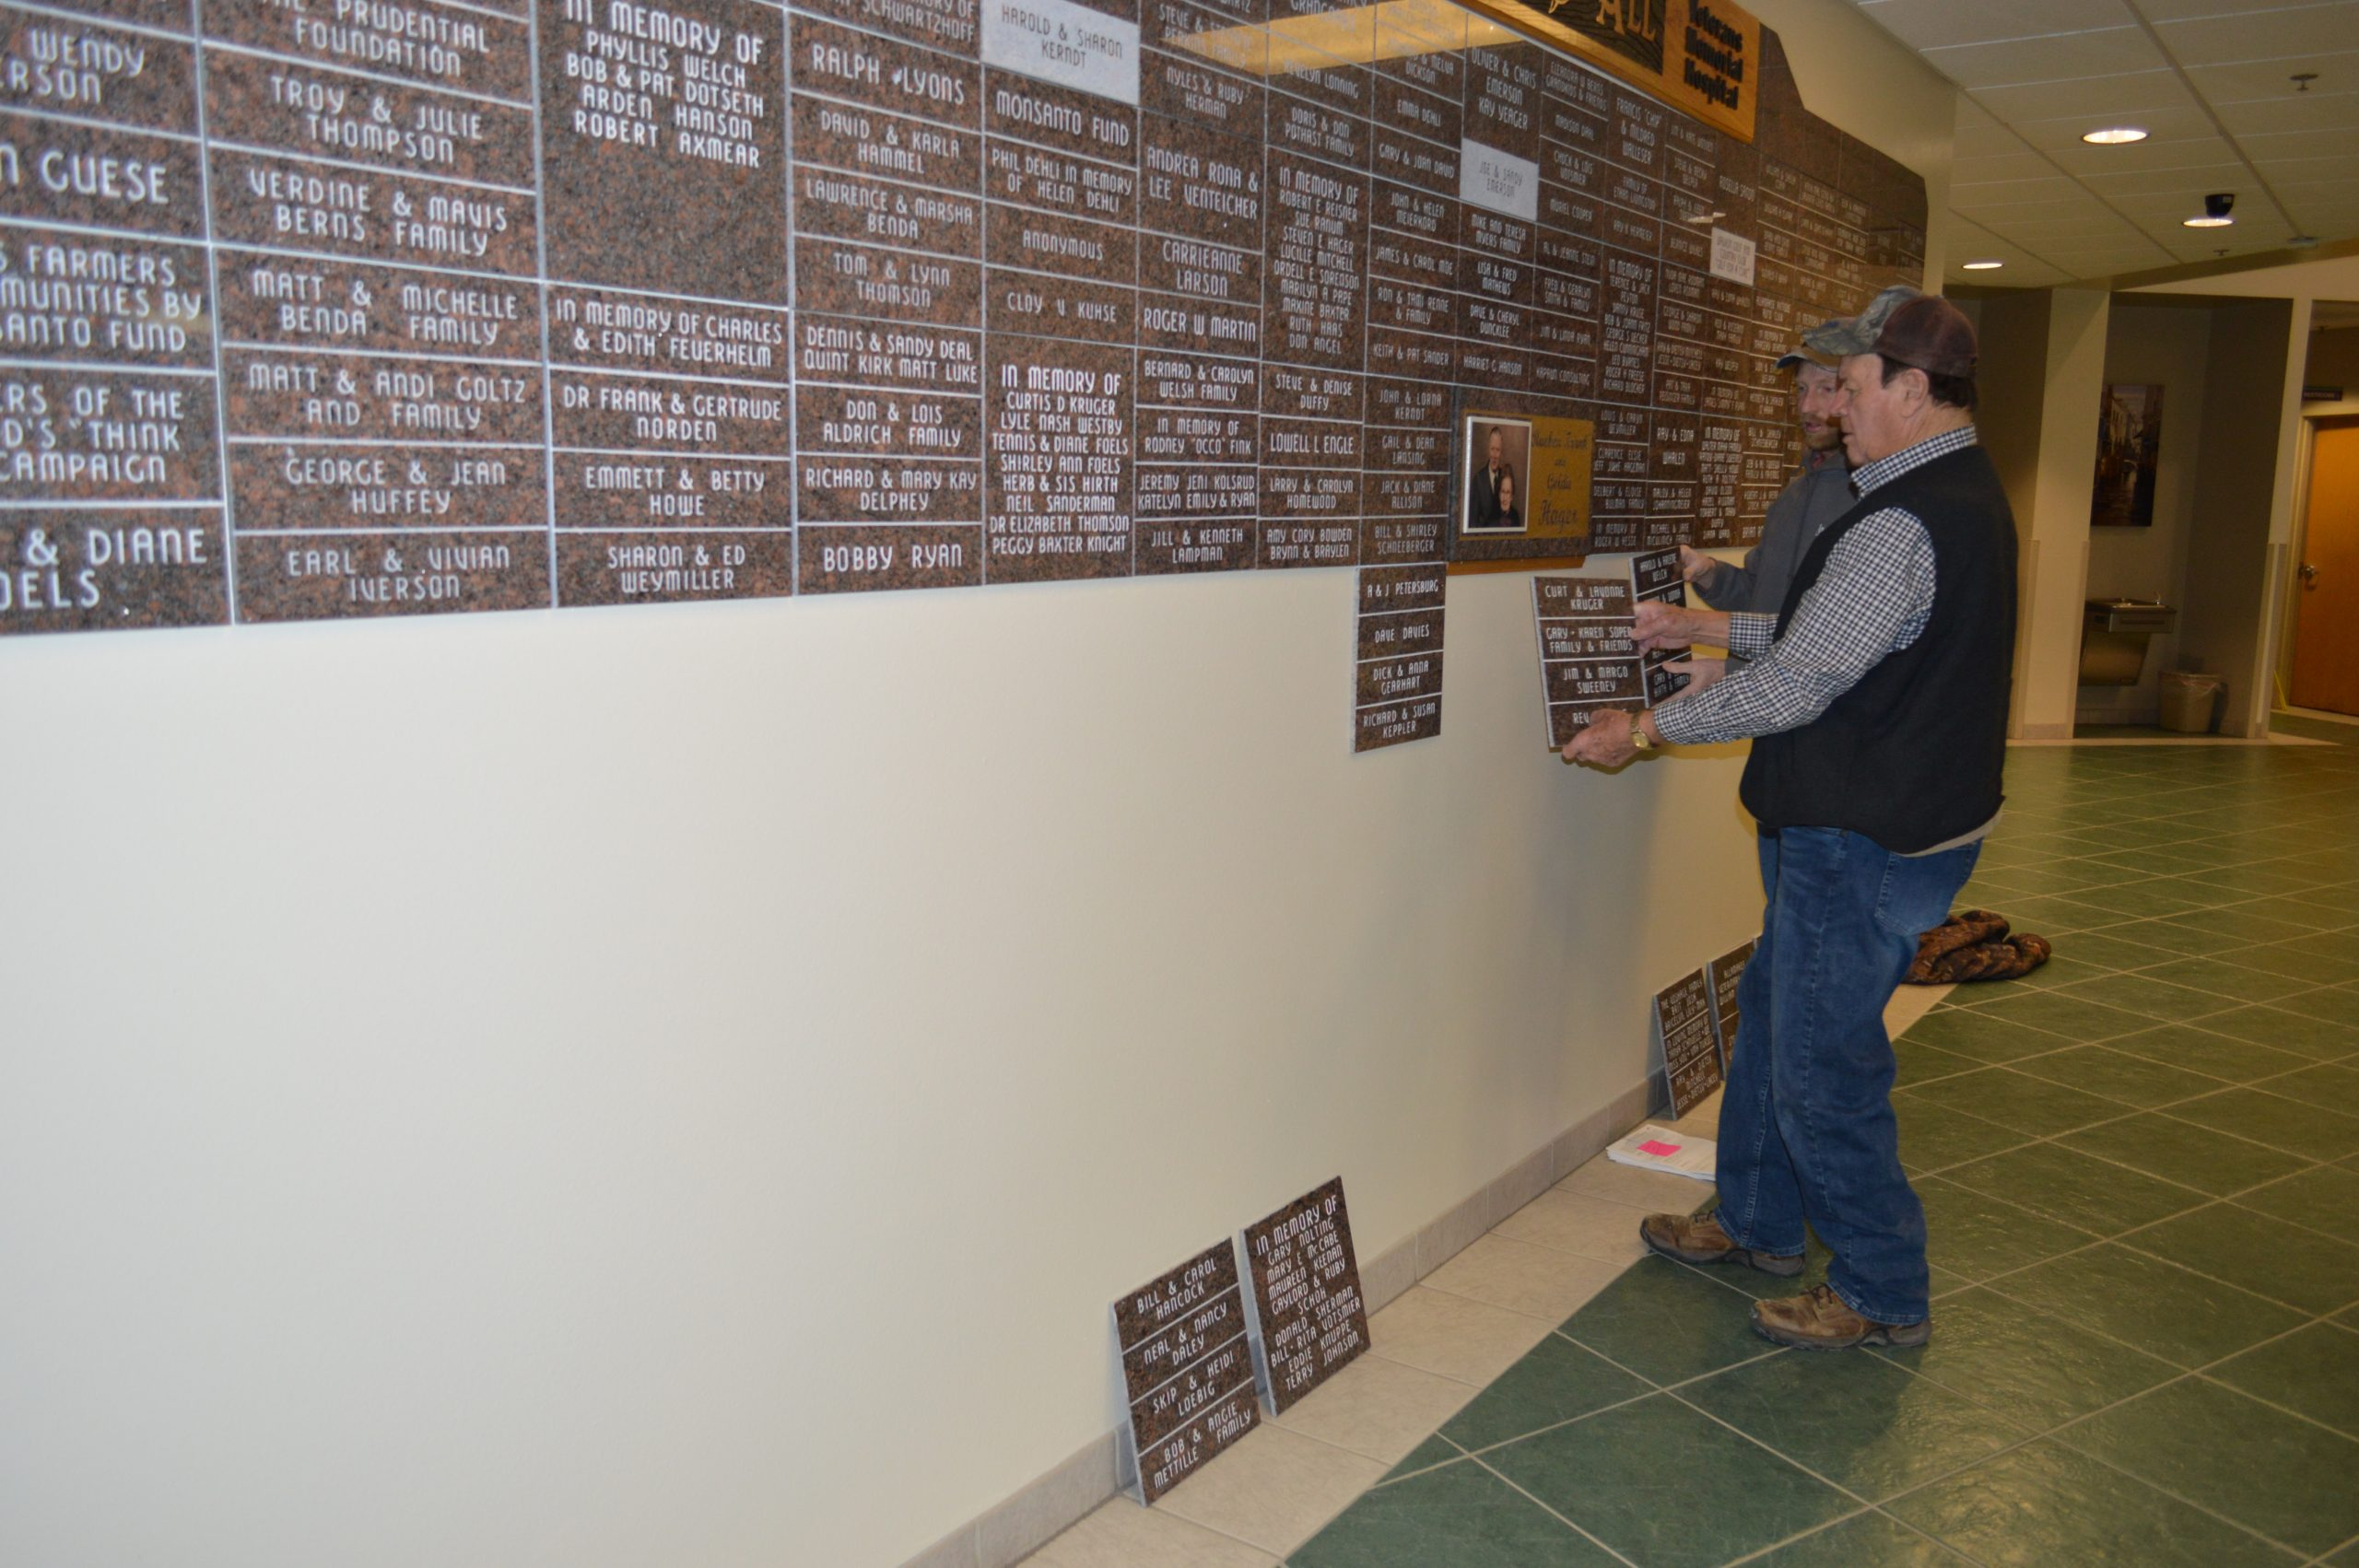 Veterans Memorial Hospital Foundation Donor Wall Updated